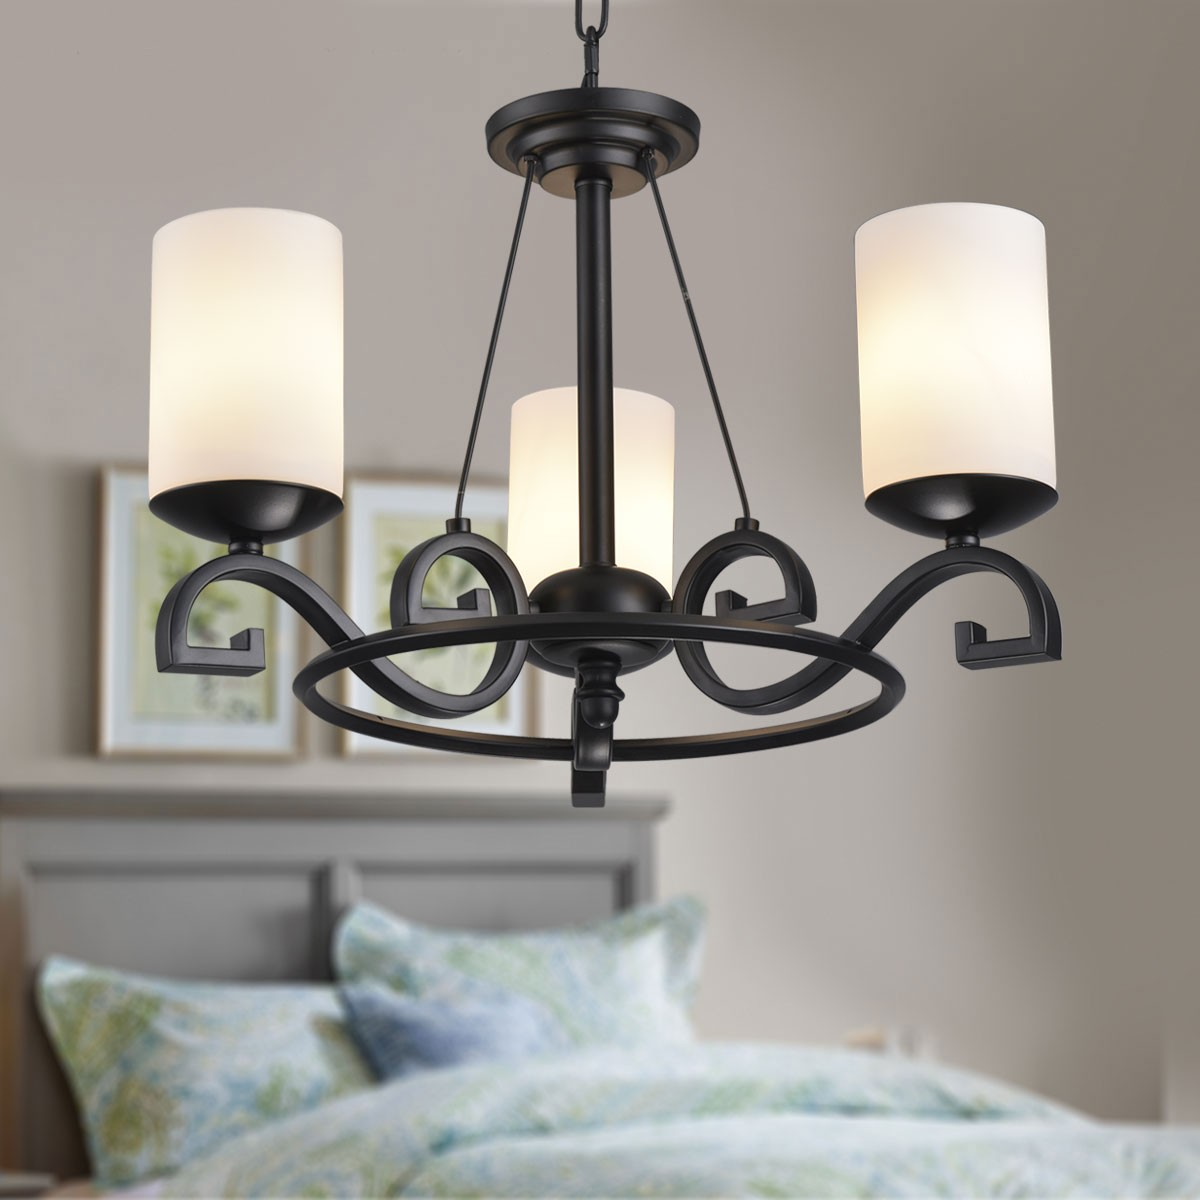 3 Light Black Wrought Iron Chandelier With Glass Shades